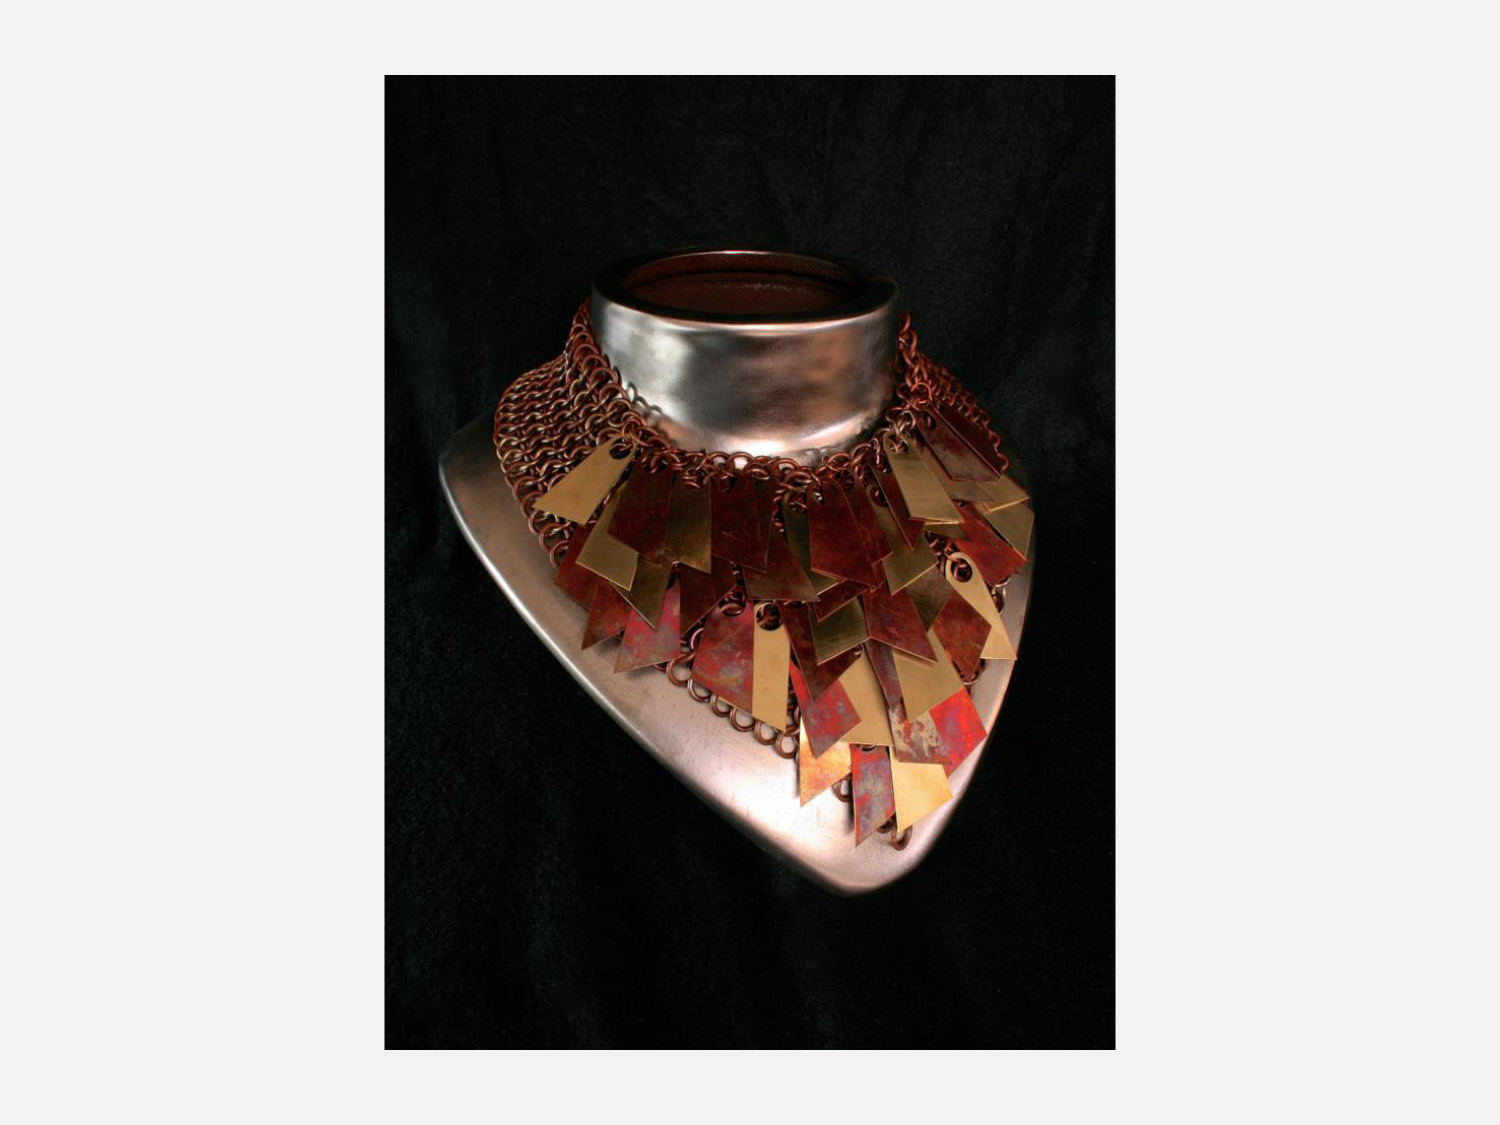 Monile; copper and brass, chain mail necklace